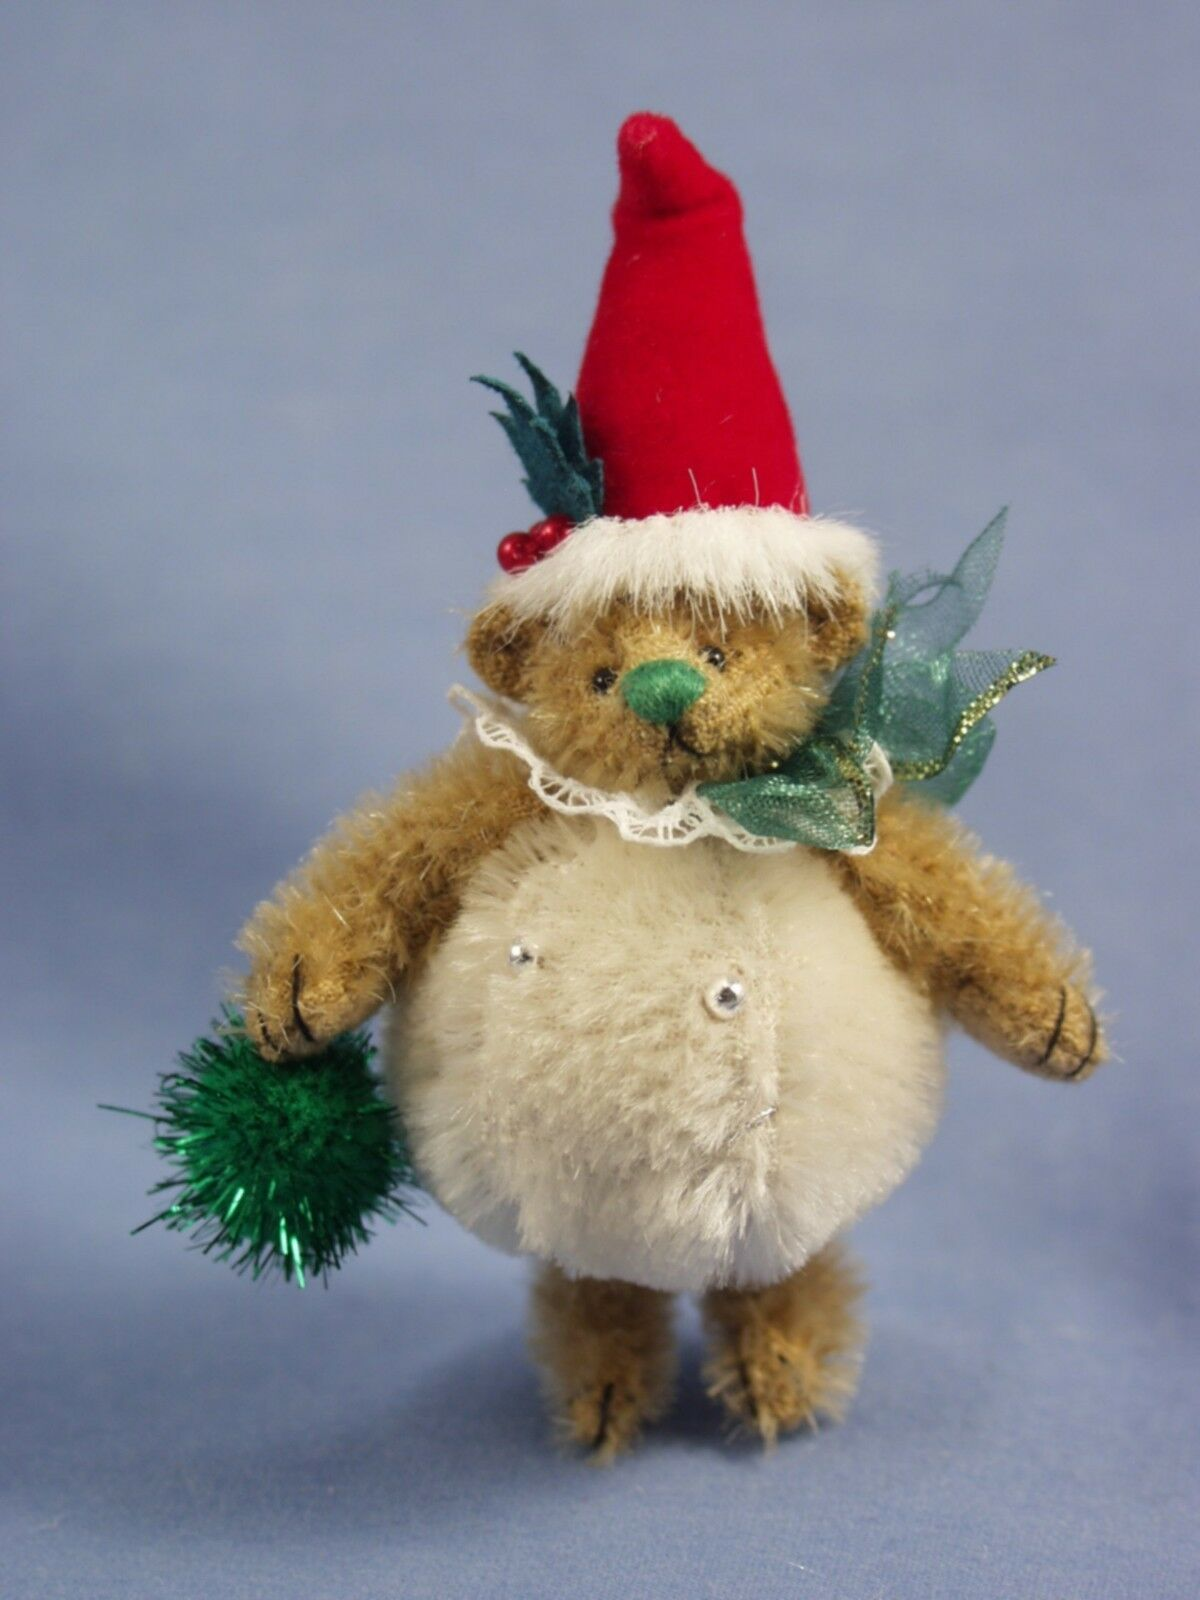 DEB CANHAM'S  SNOWBALL TEDDY oroEN MOHAIR TEDDY DRESSED AS SNOWBALL W SANTA HAT